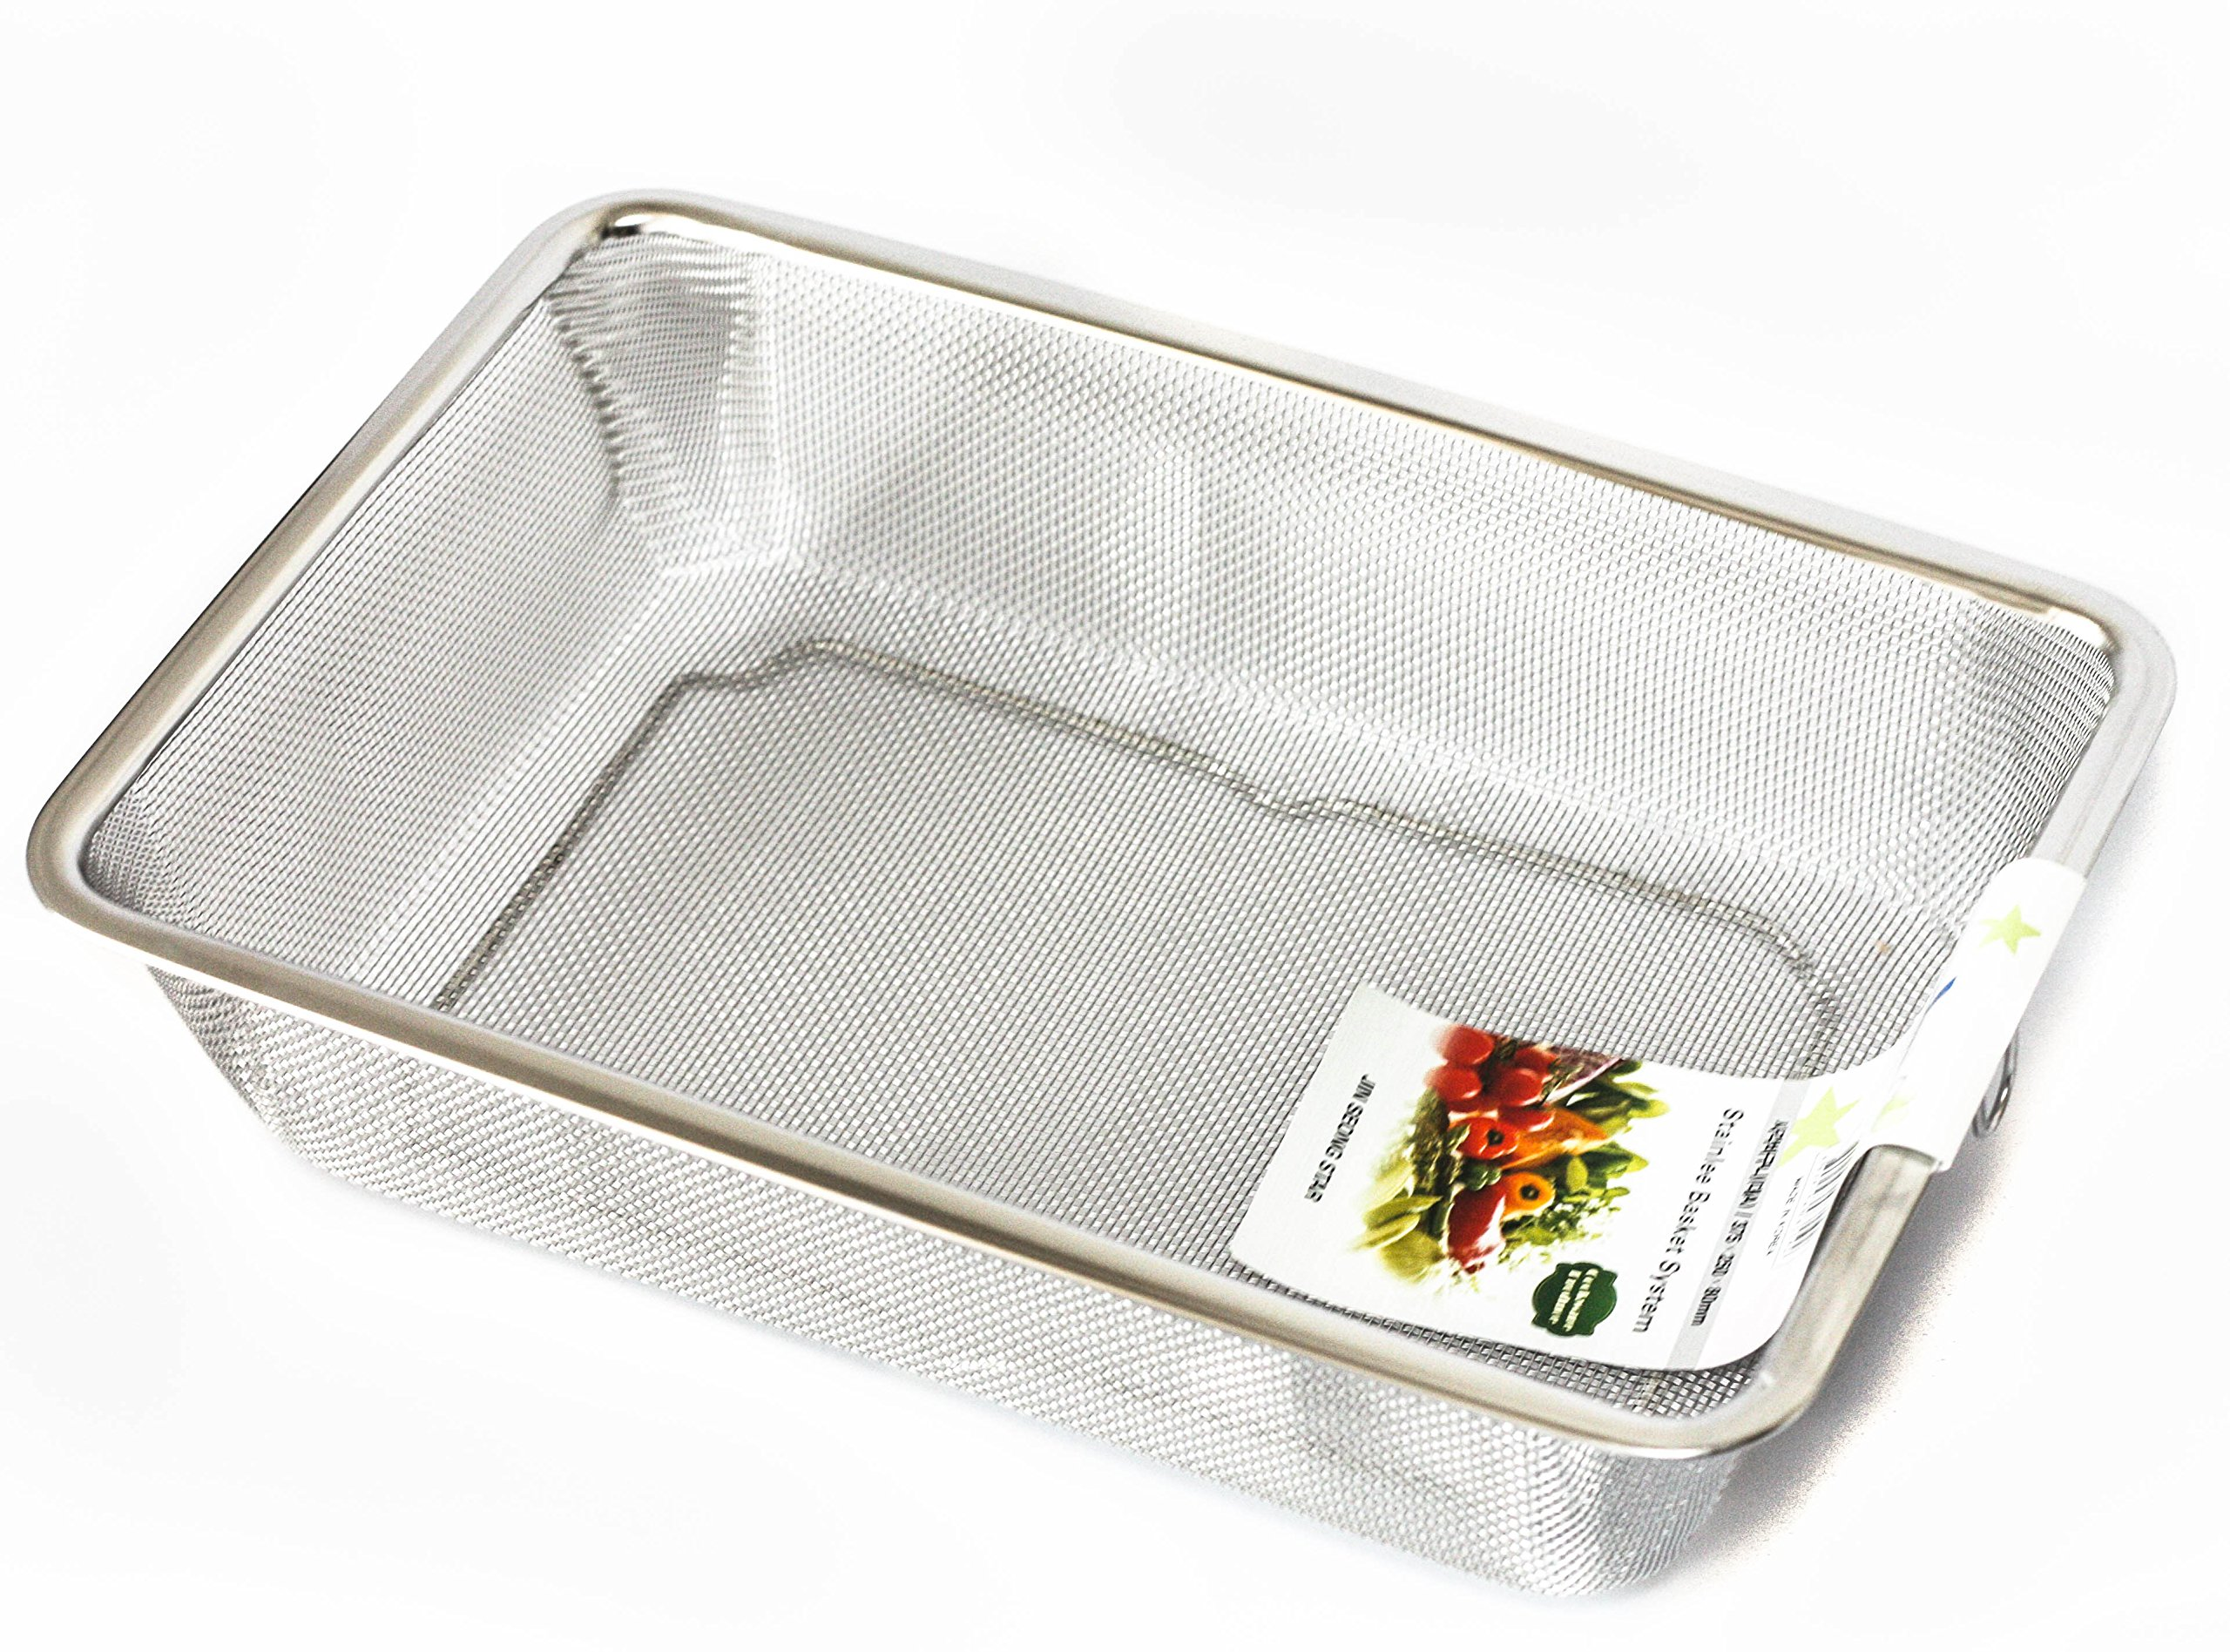 "Rectangle L14.7"" X W9.8"" X H 3.15"" Stainless Steel Mesh Sink Basket Vegetable Fruit Fried Food Strainer Kitchen Colander Large"